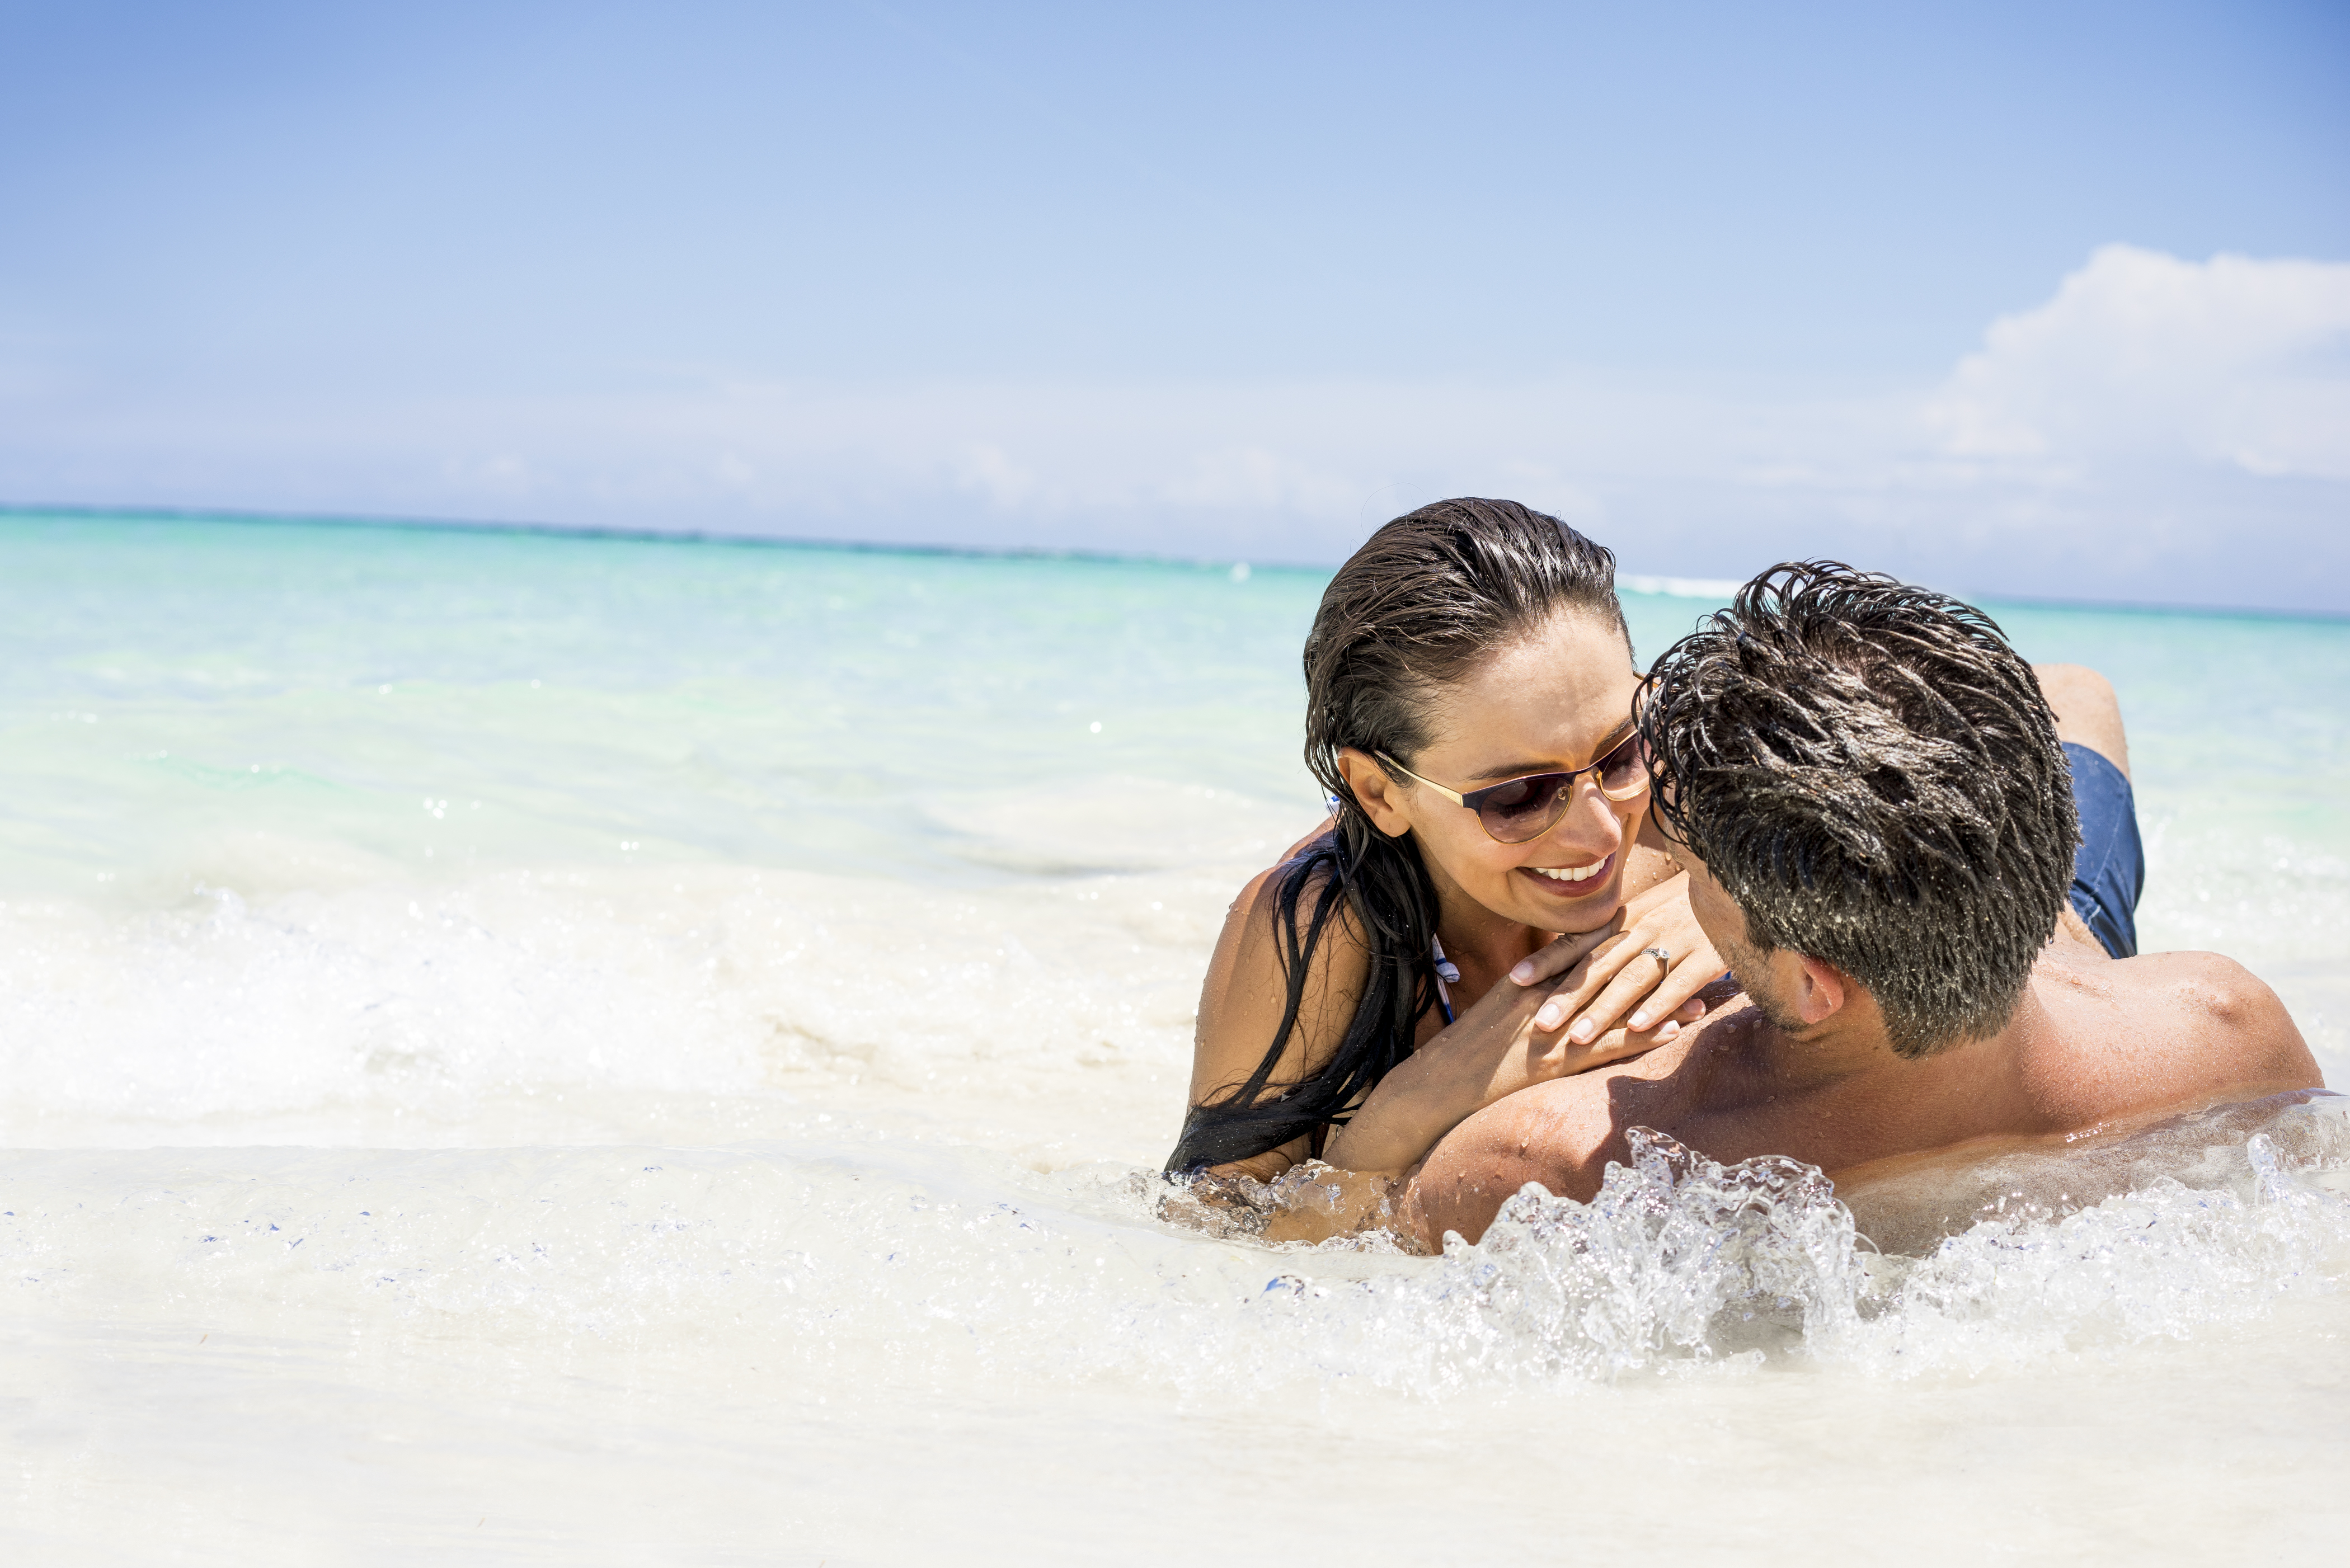 Travel Agency All-Inclusive Resort Couples Swept Away 06